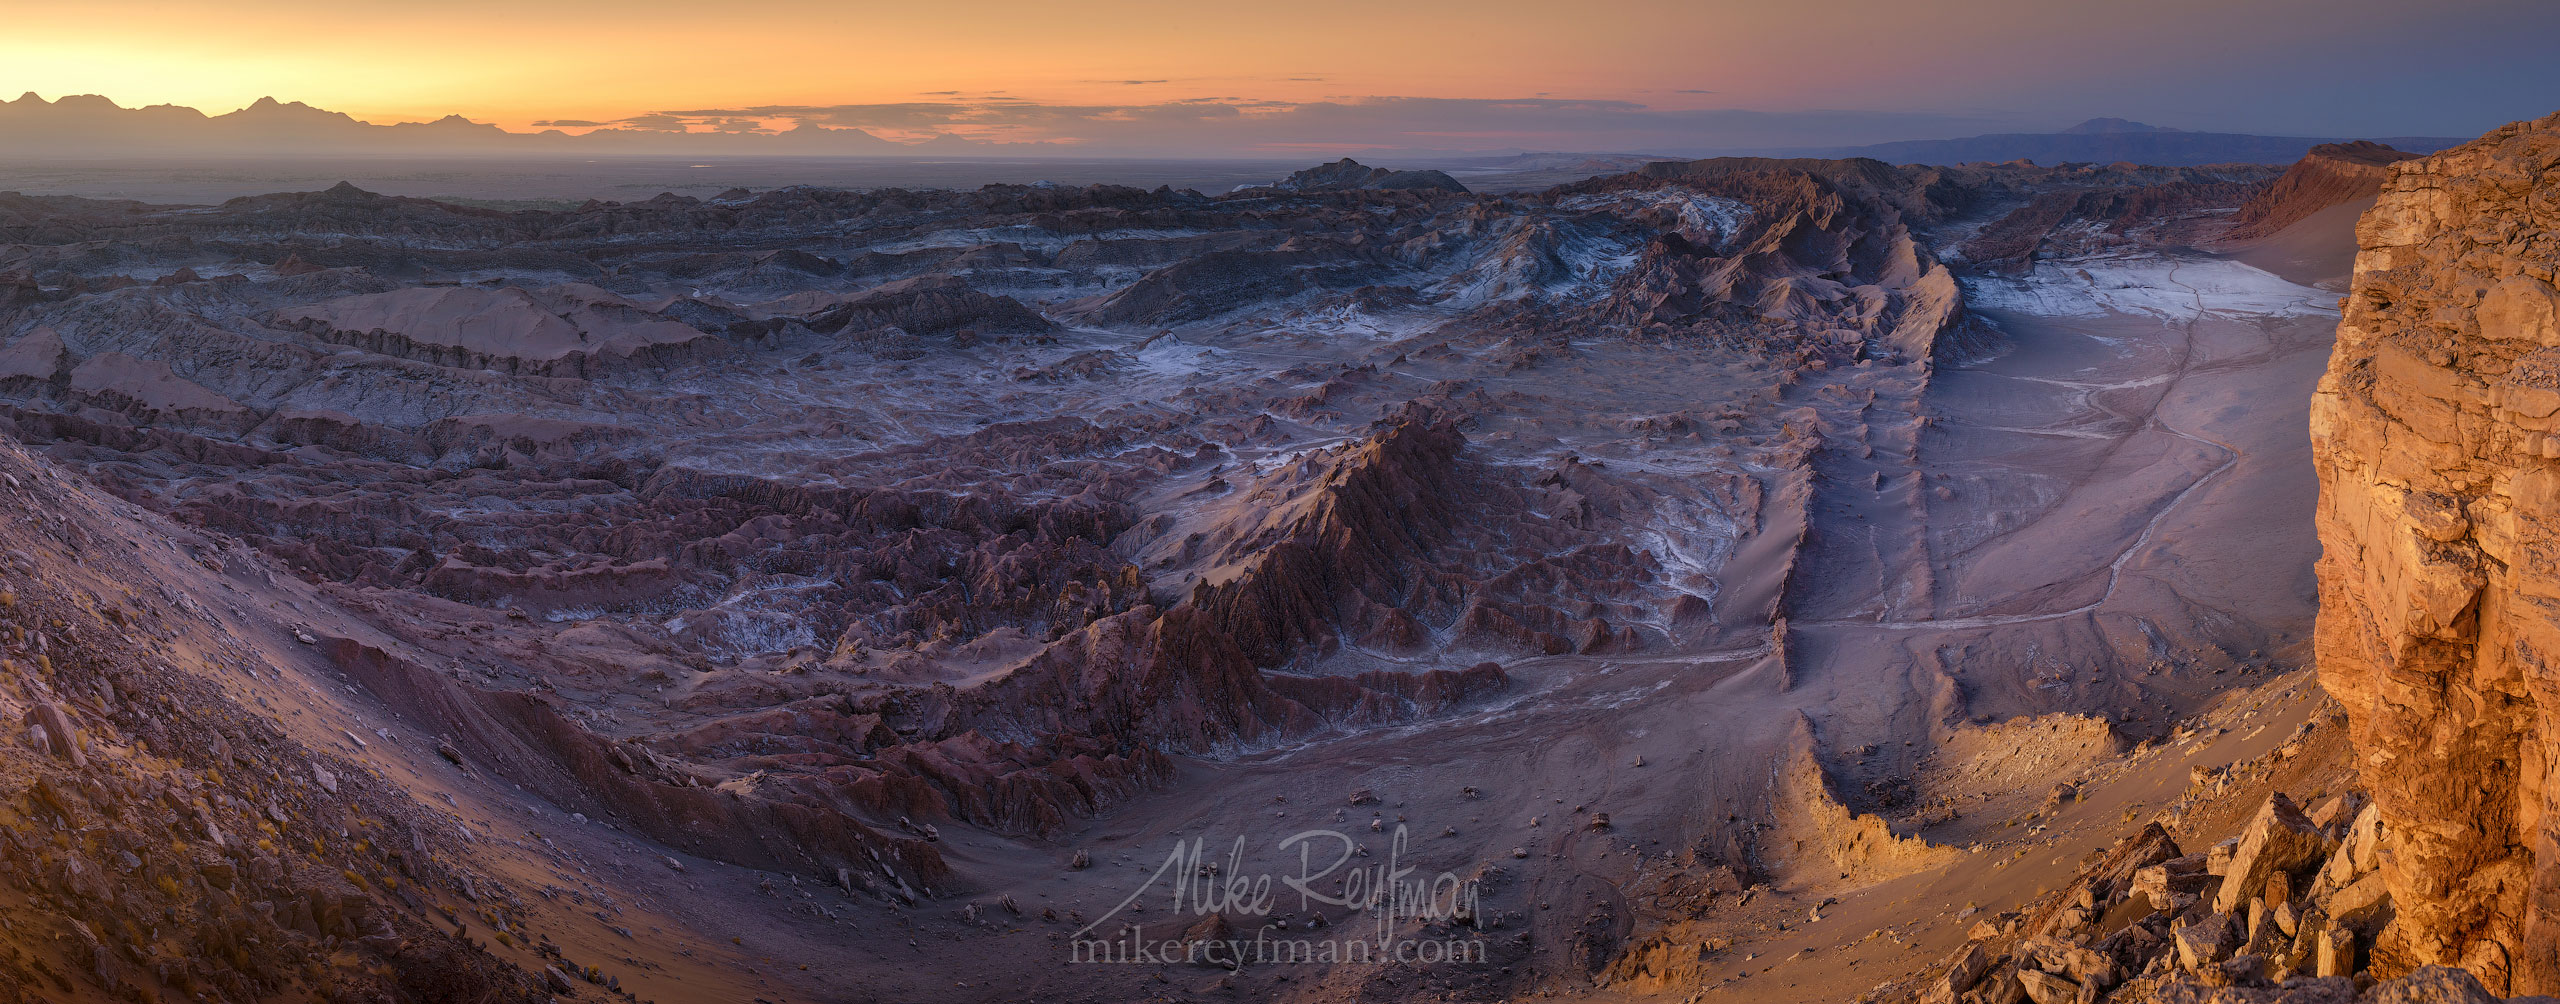 AA1-D1D9195_Pano_1x2.55 - Atacama and Altiplano. The Driest Desert and The High Plain - Mike Reyfman Photography